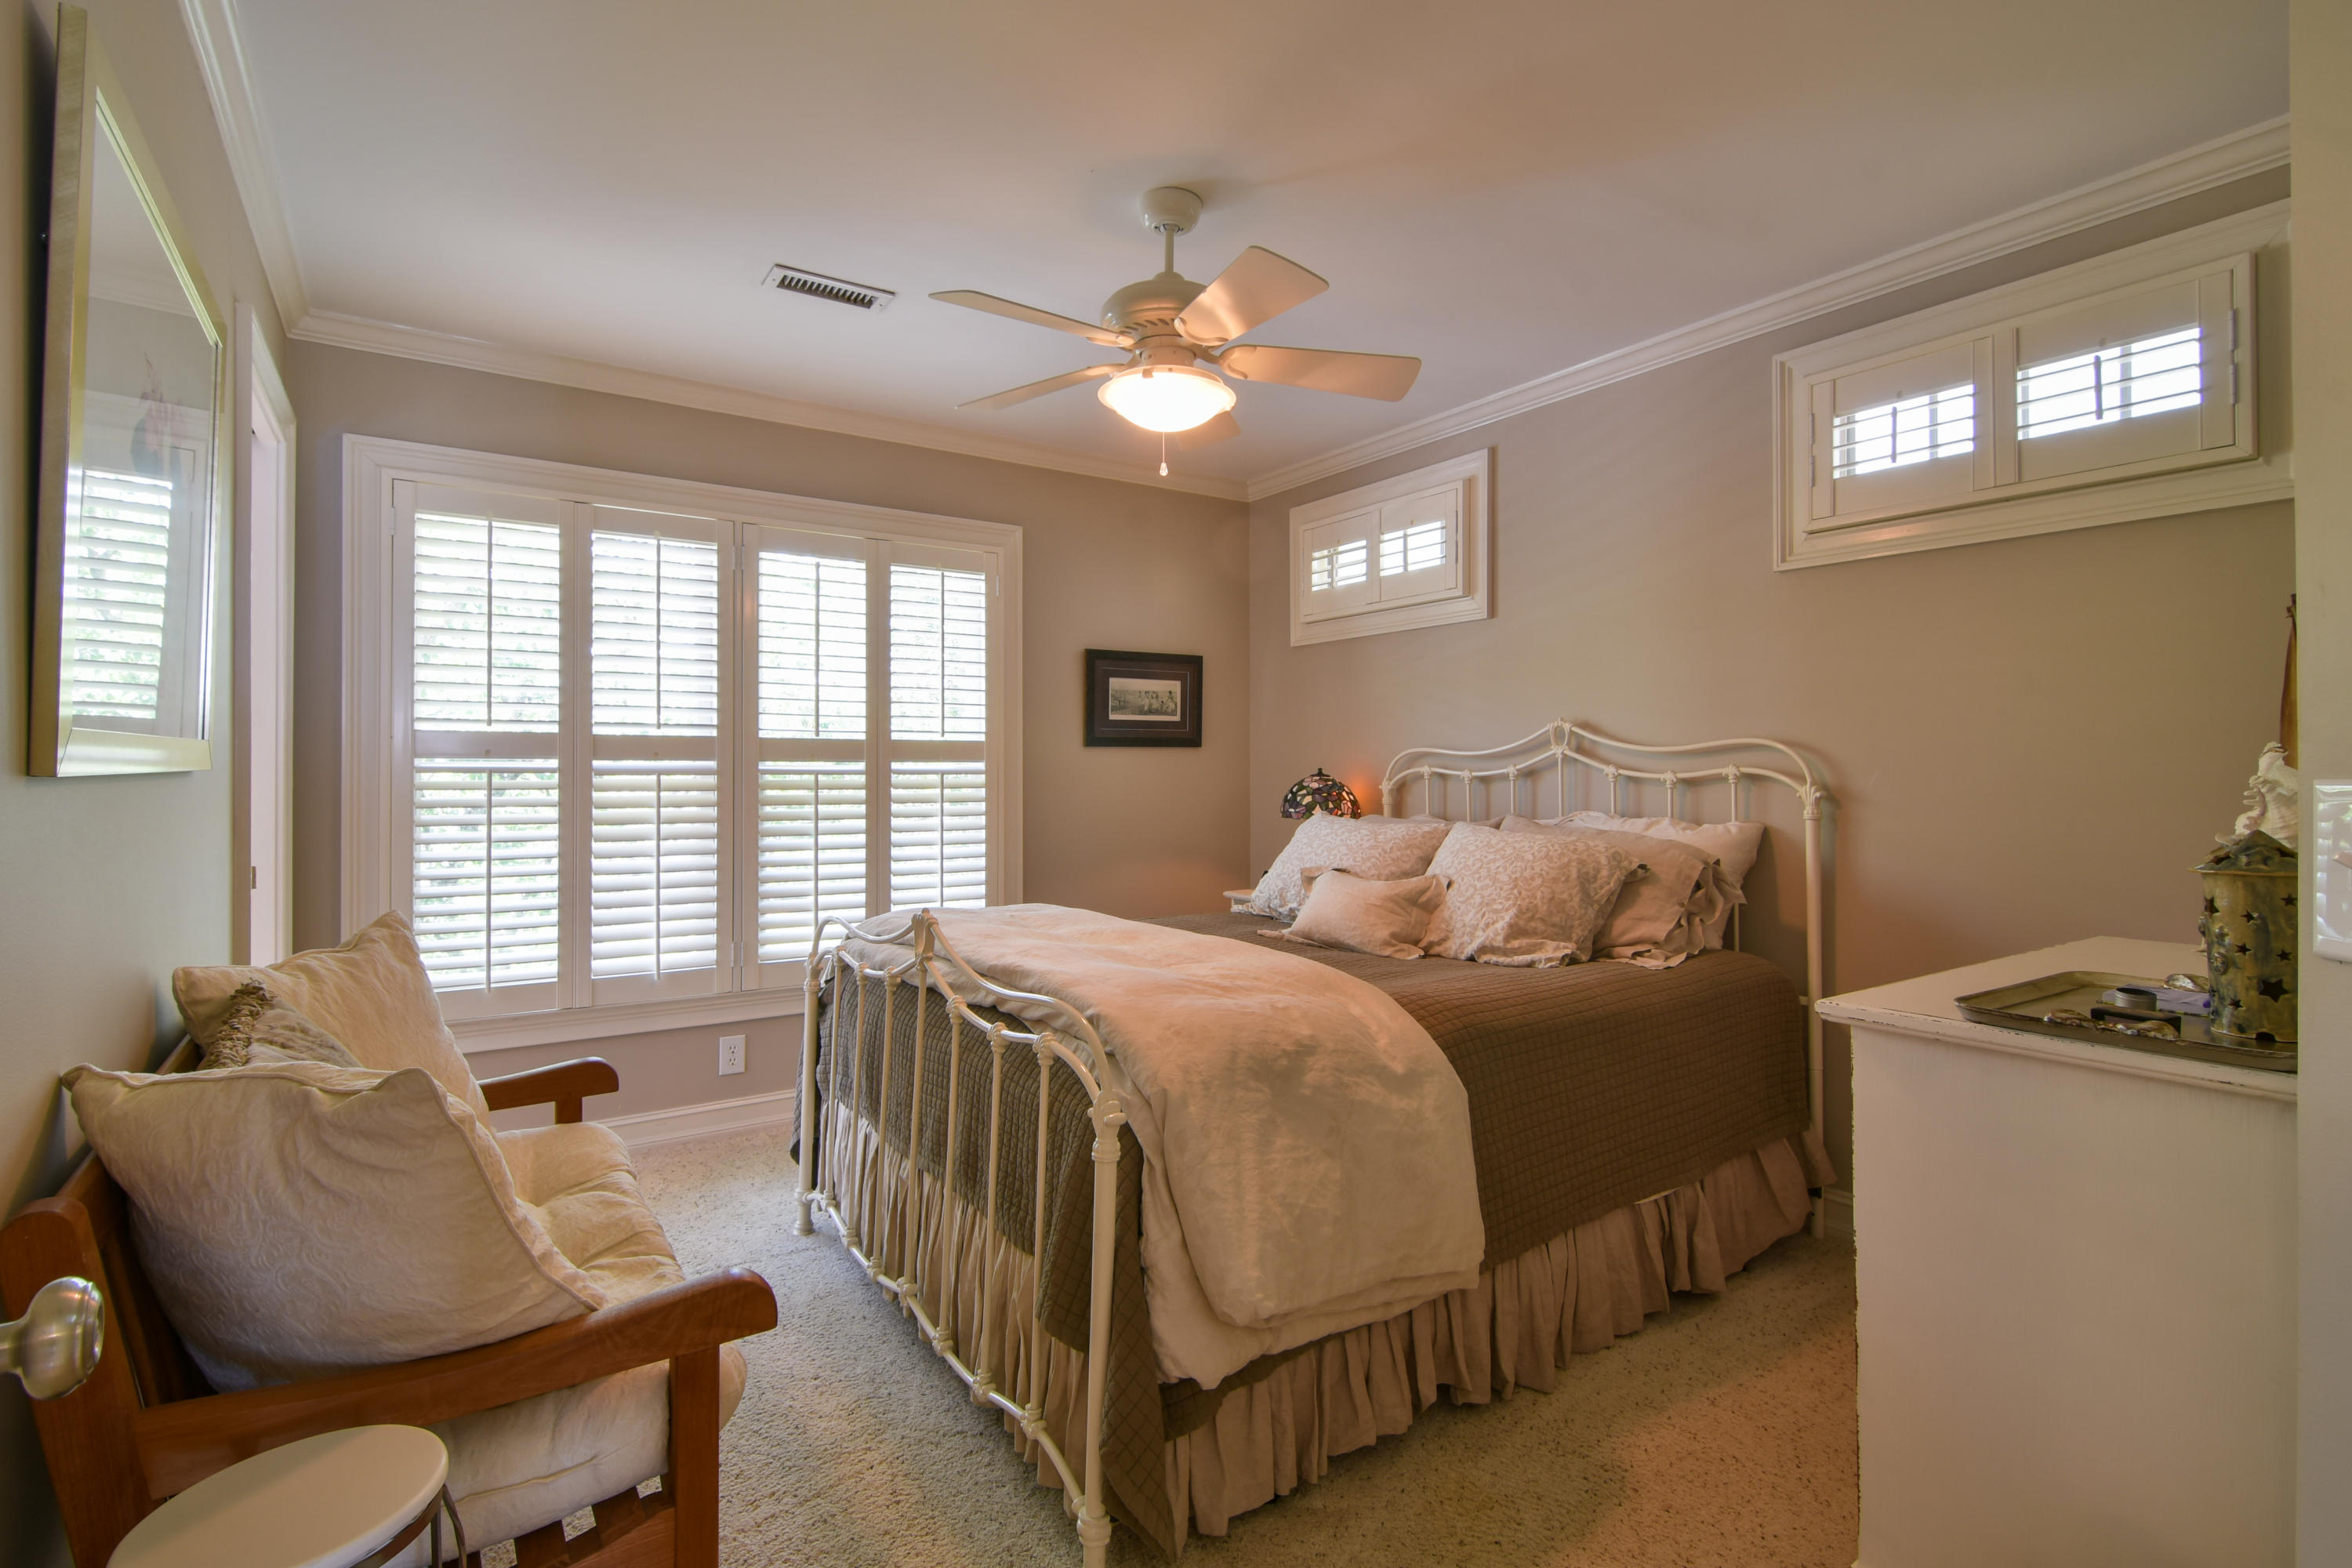 Sullivans Island Homes For Sale - 405 Station 12, Sullivans Island, SC - 75